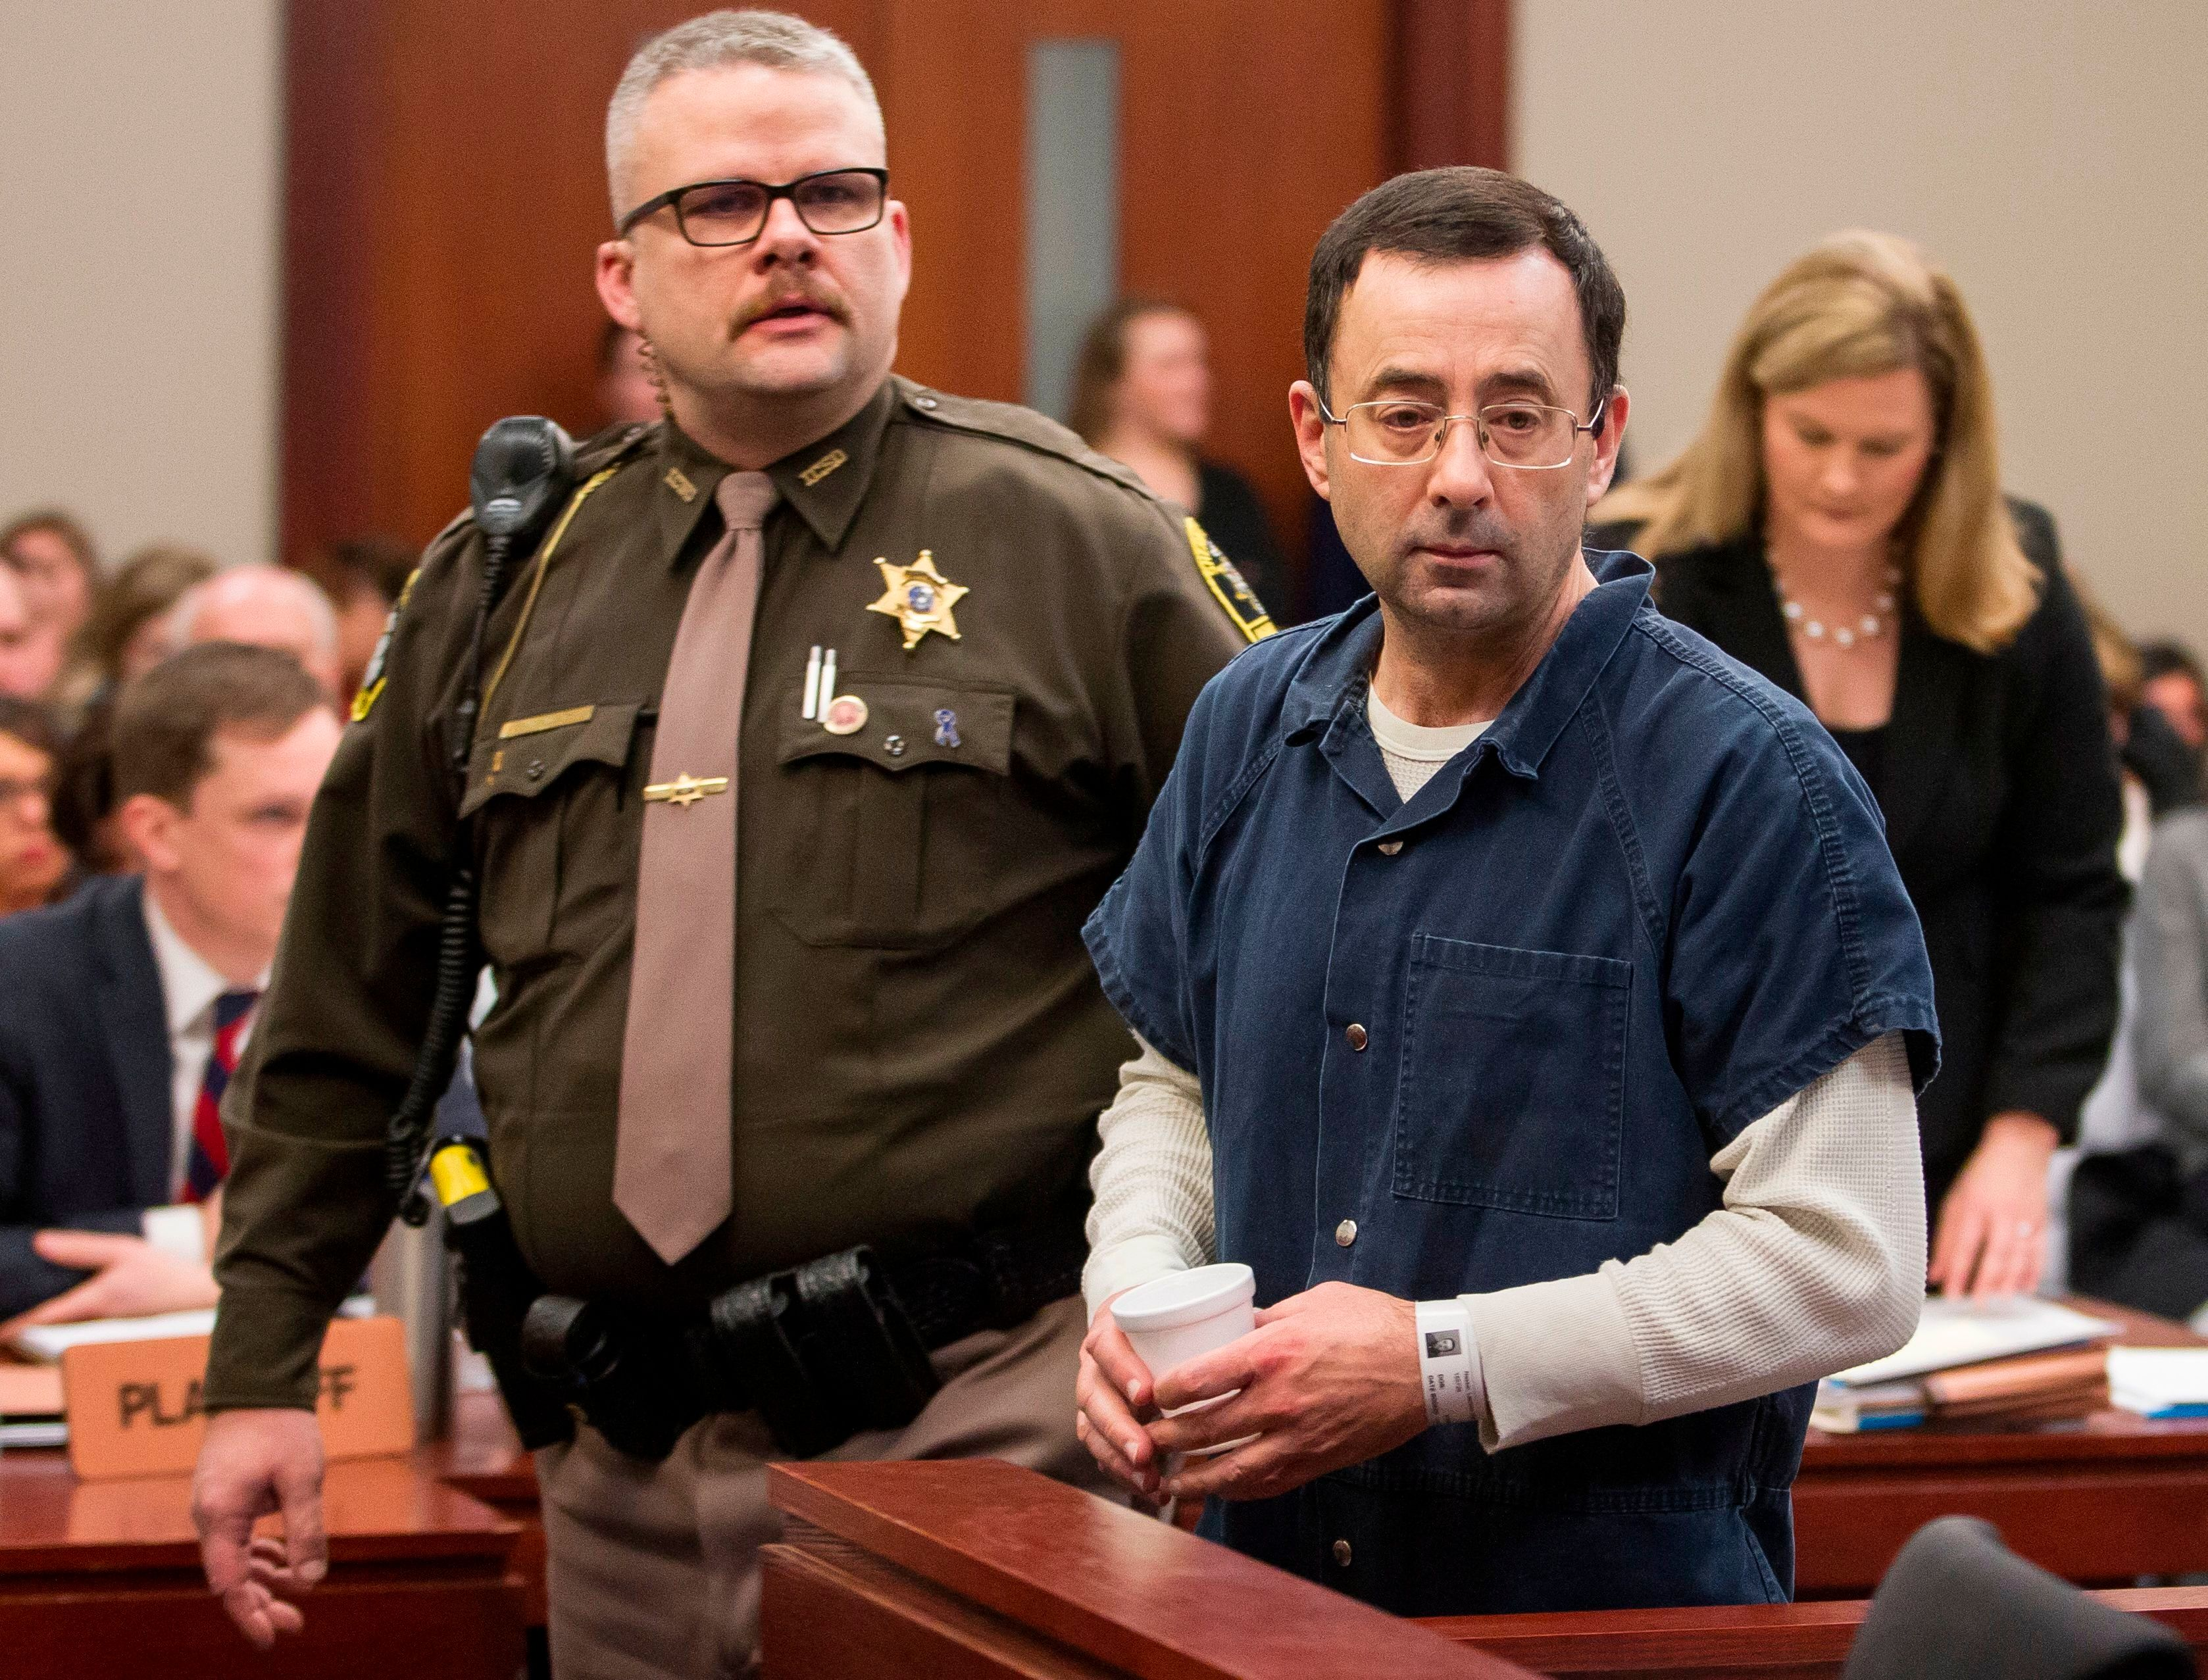 Larry Nassar Documentary To Air On HBO Next